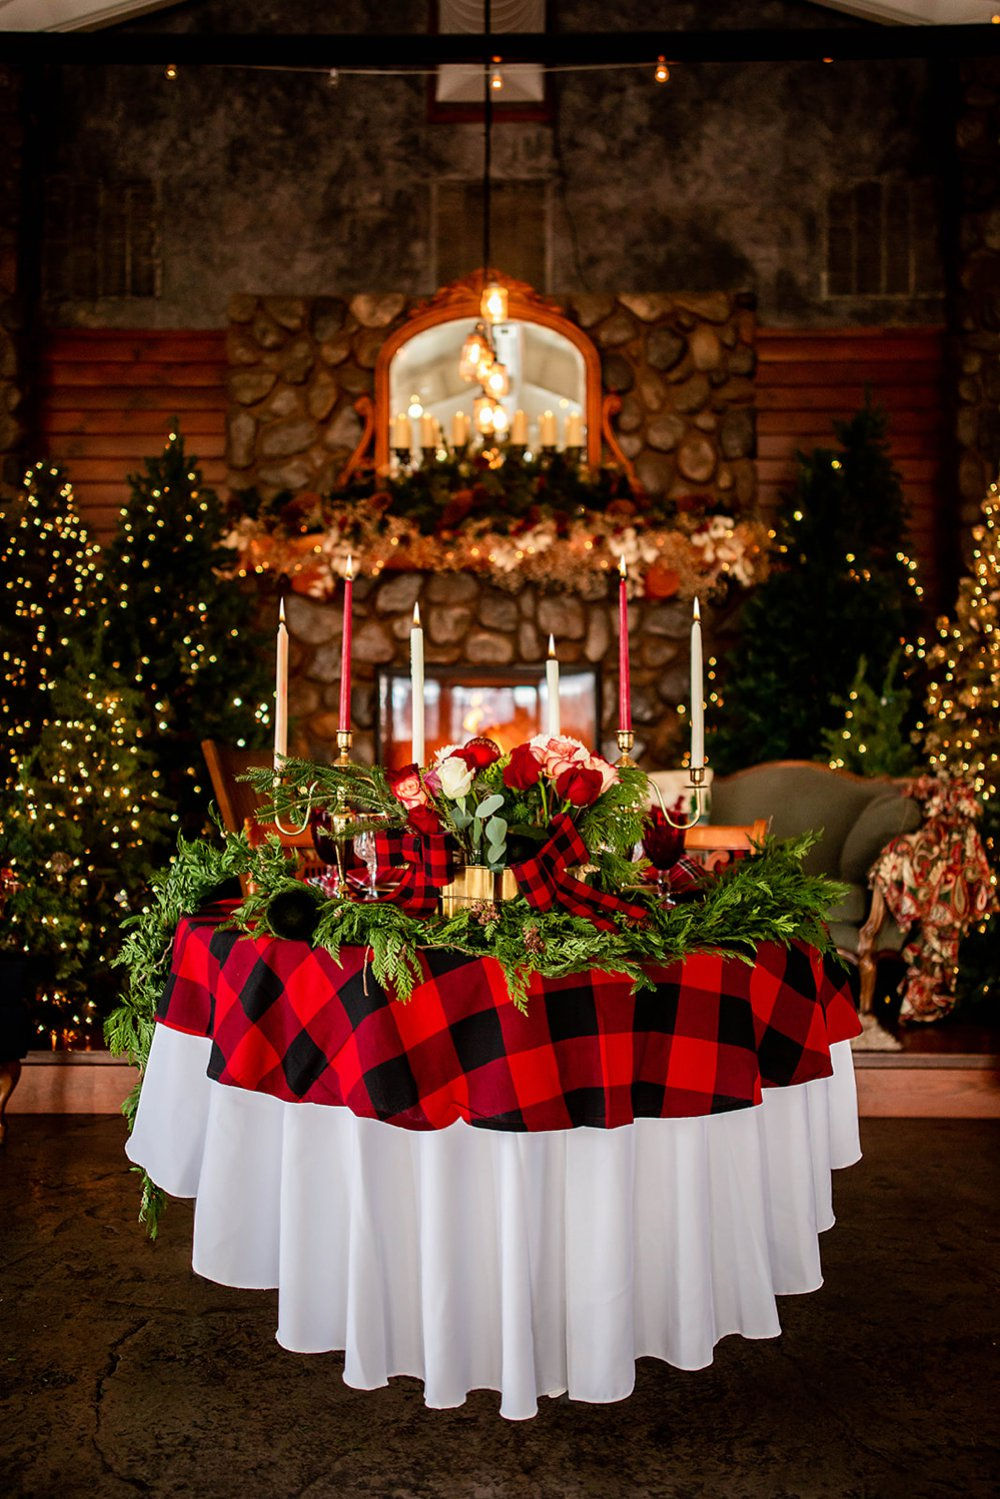 Christmas day wedding table decoration with red plaid